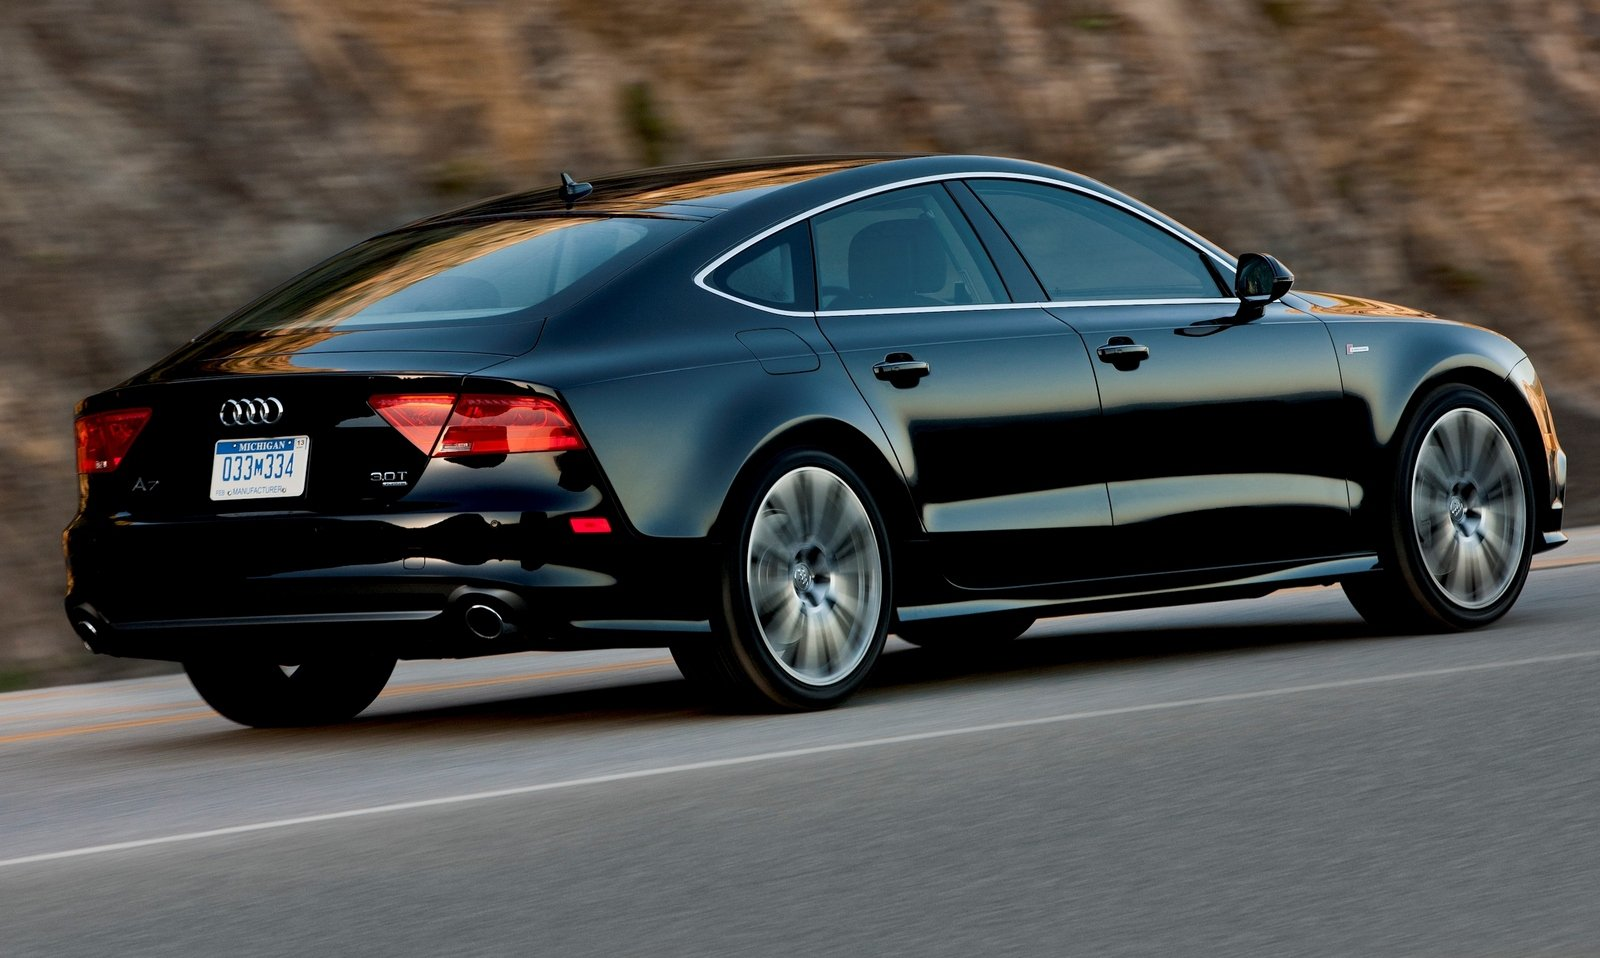 2014 audi a7 picture 512939 car review top speed. Black Bedroom Furniture Sets. Home Design Ideas